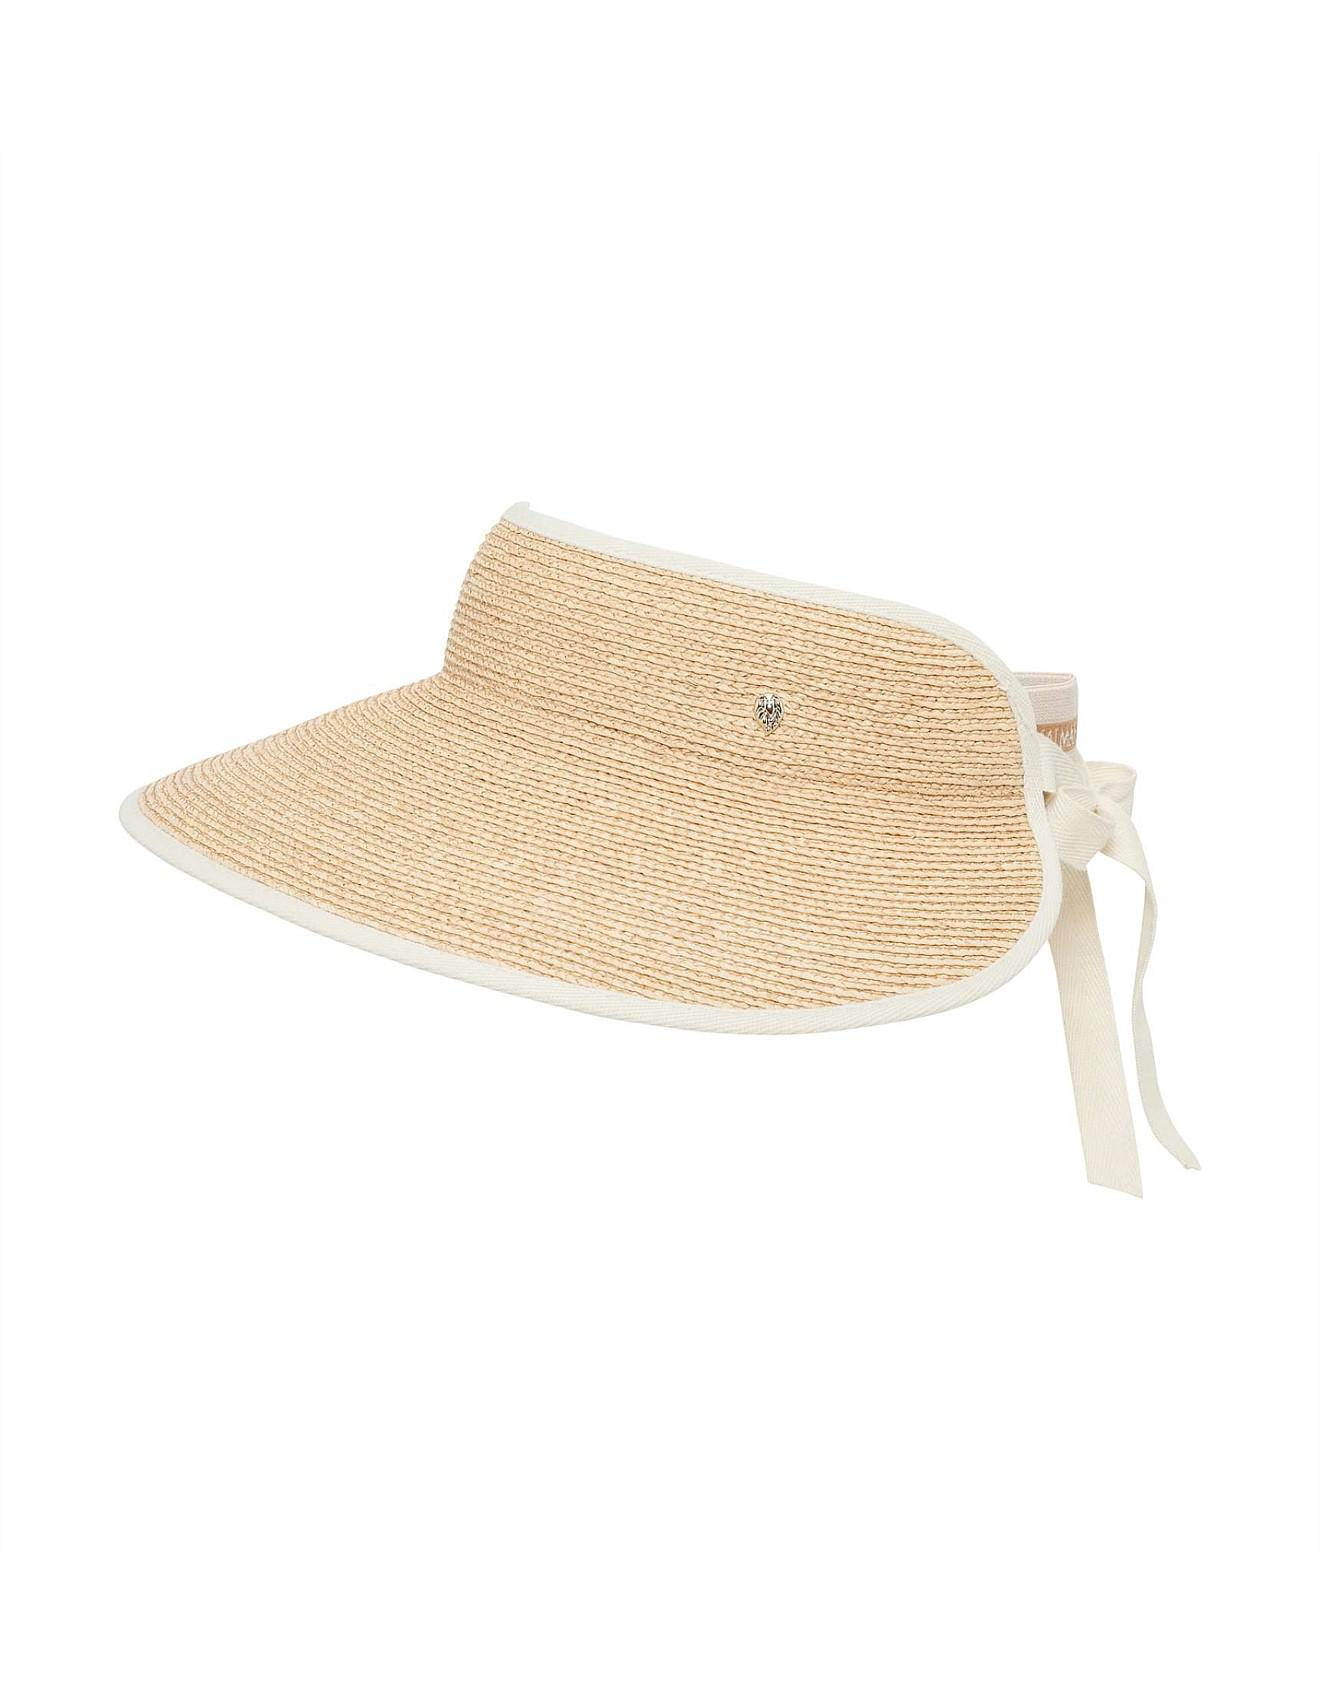 b45f2b16be7a8 Helen Kaminski Mita Fine Braid Visor in Natural - Save 20% - Lyst